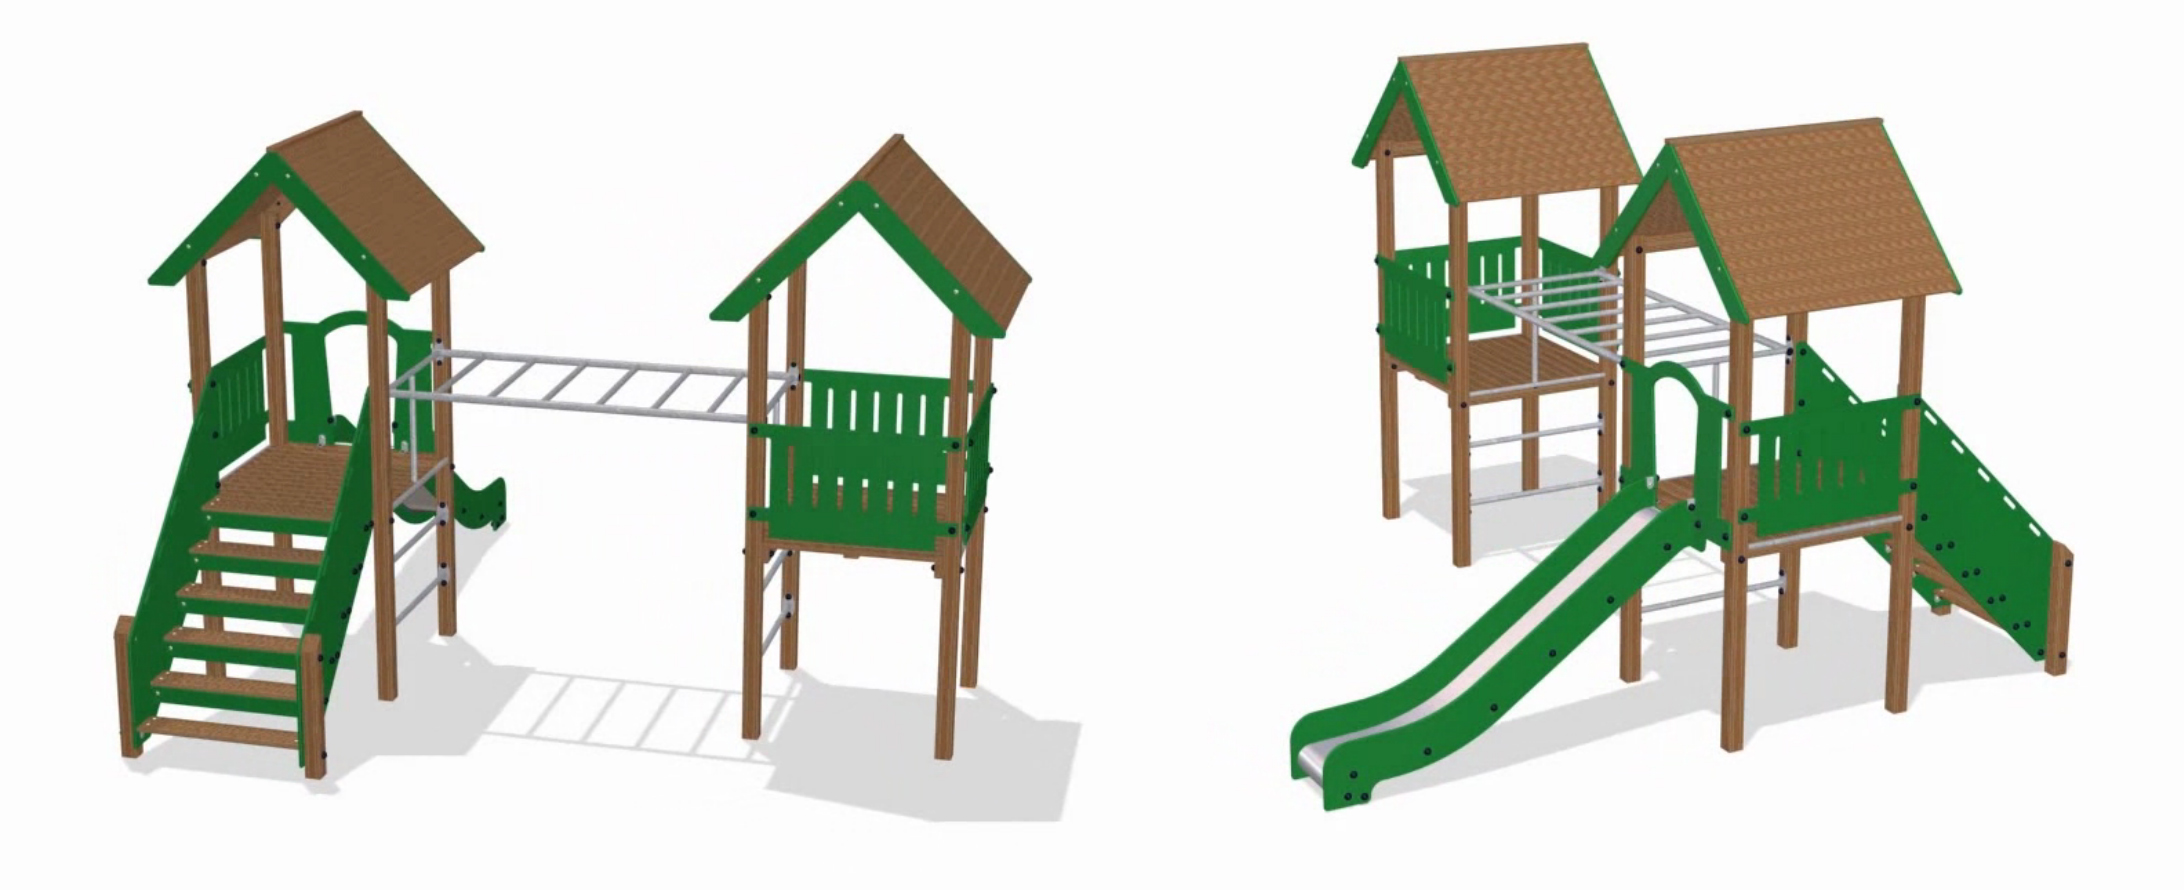 Kompan Playground Units : High Quality, Durable, Recyclable, Vibrant Colours